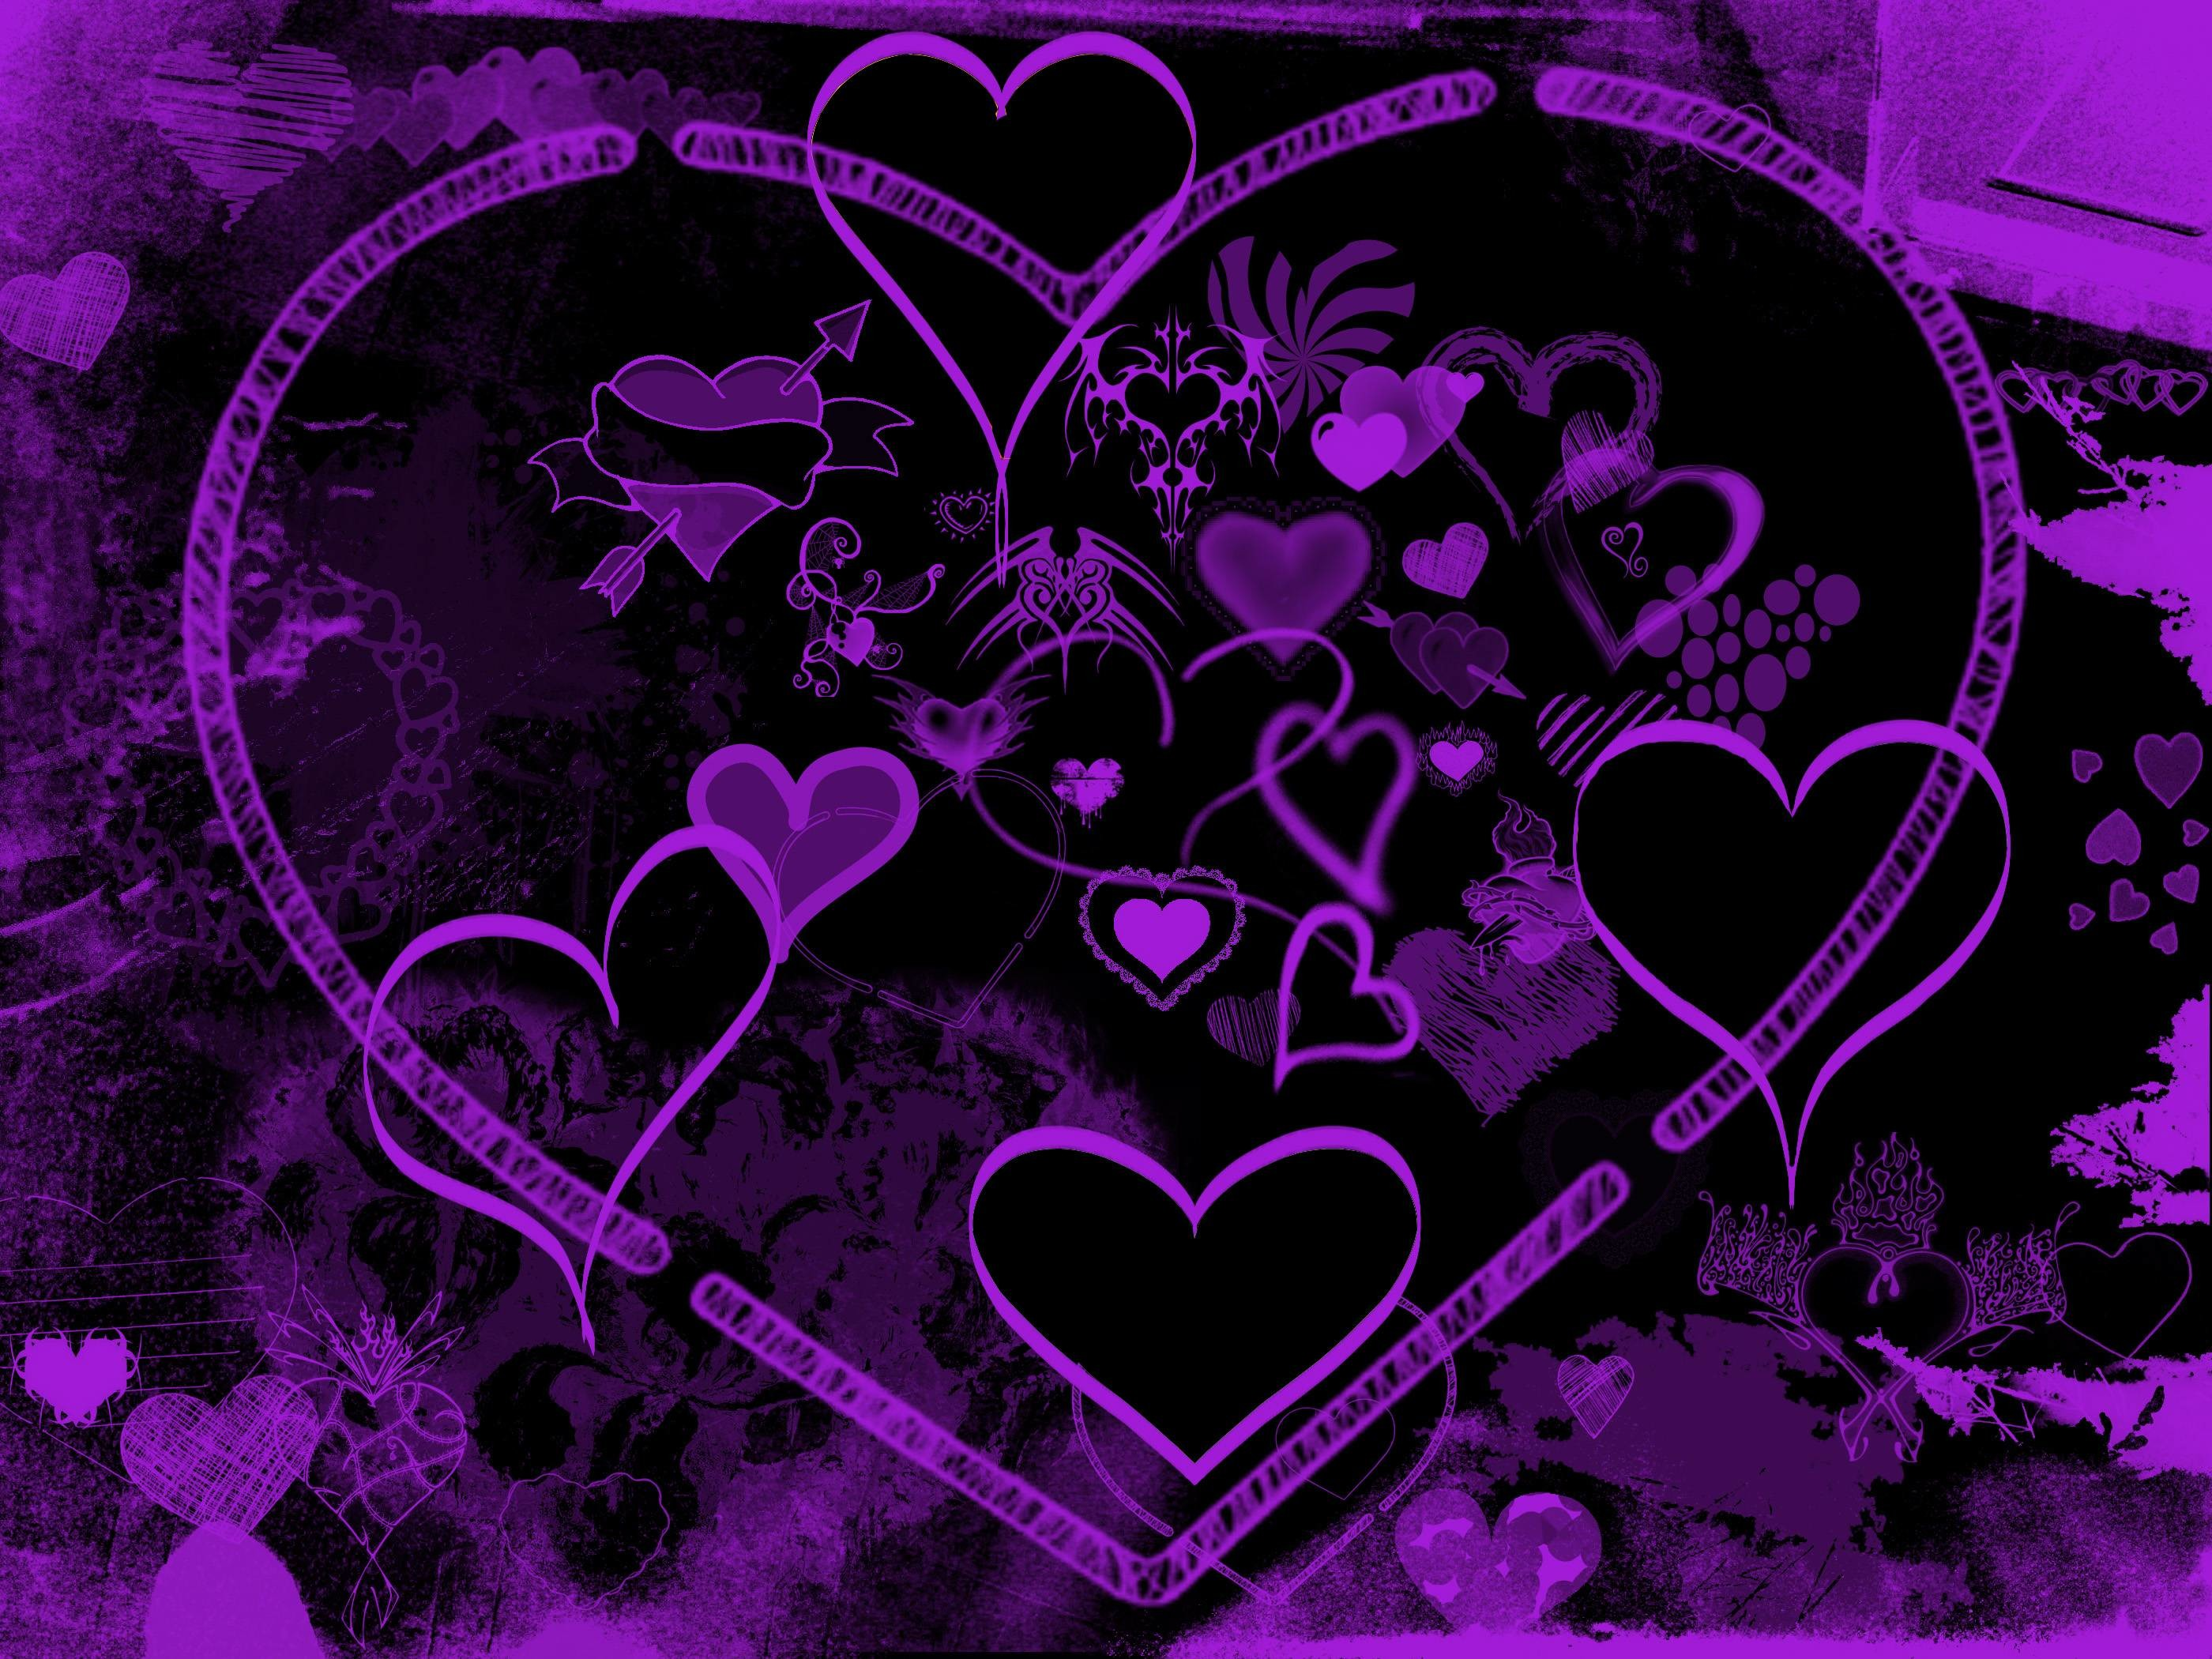 2800x2100 Purple Hearts Wallpaper by lavadragon on DeviantArt